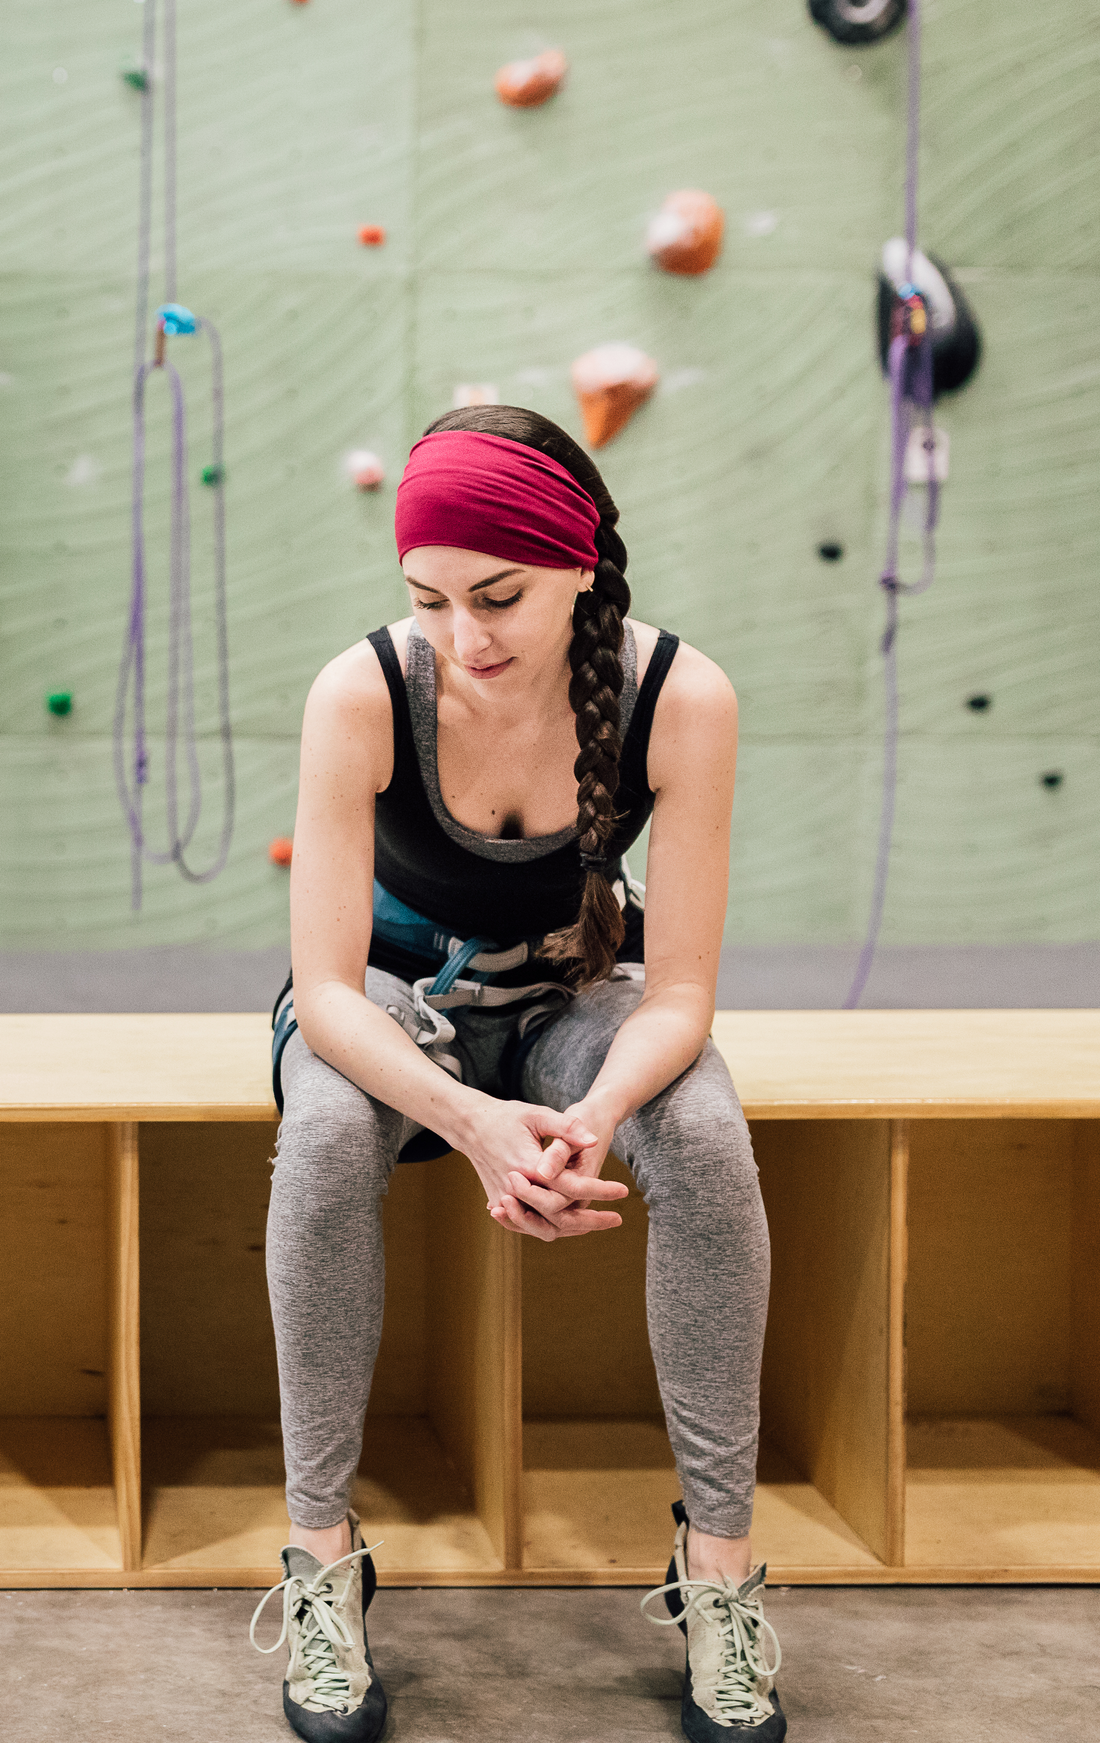 Top 4 Must-Haves for Yoga Class (feat. Oly Band headband)